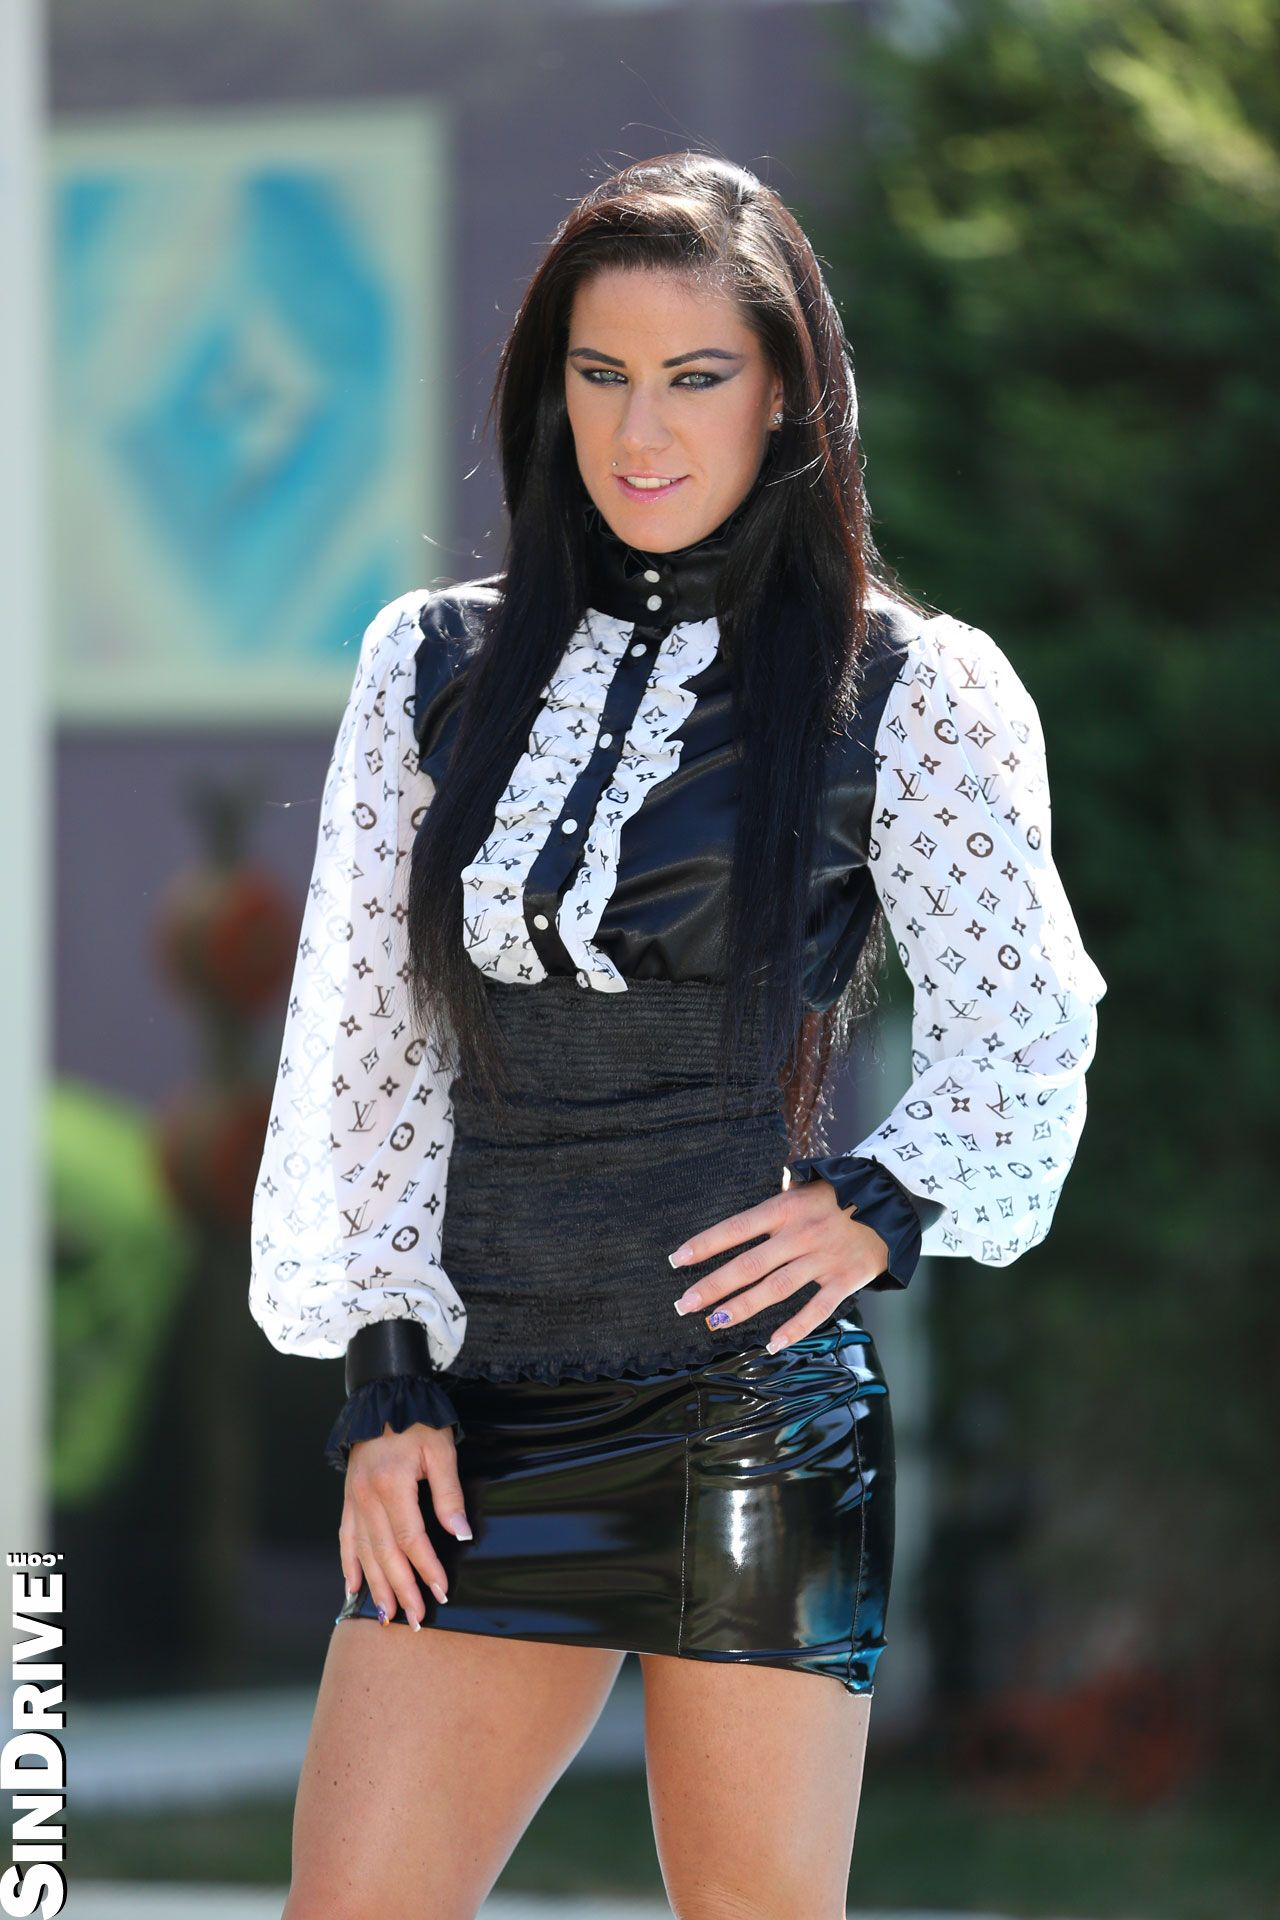 Athina Love Videos and Photos 98 at FreeOnes